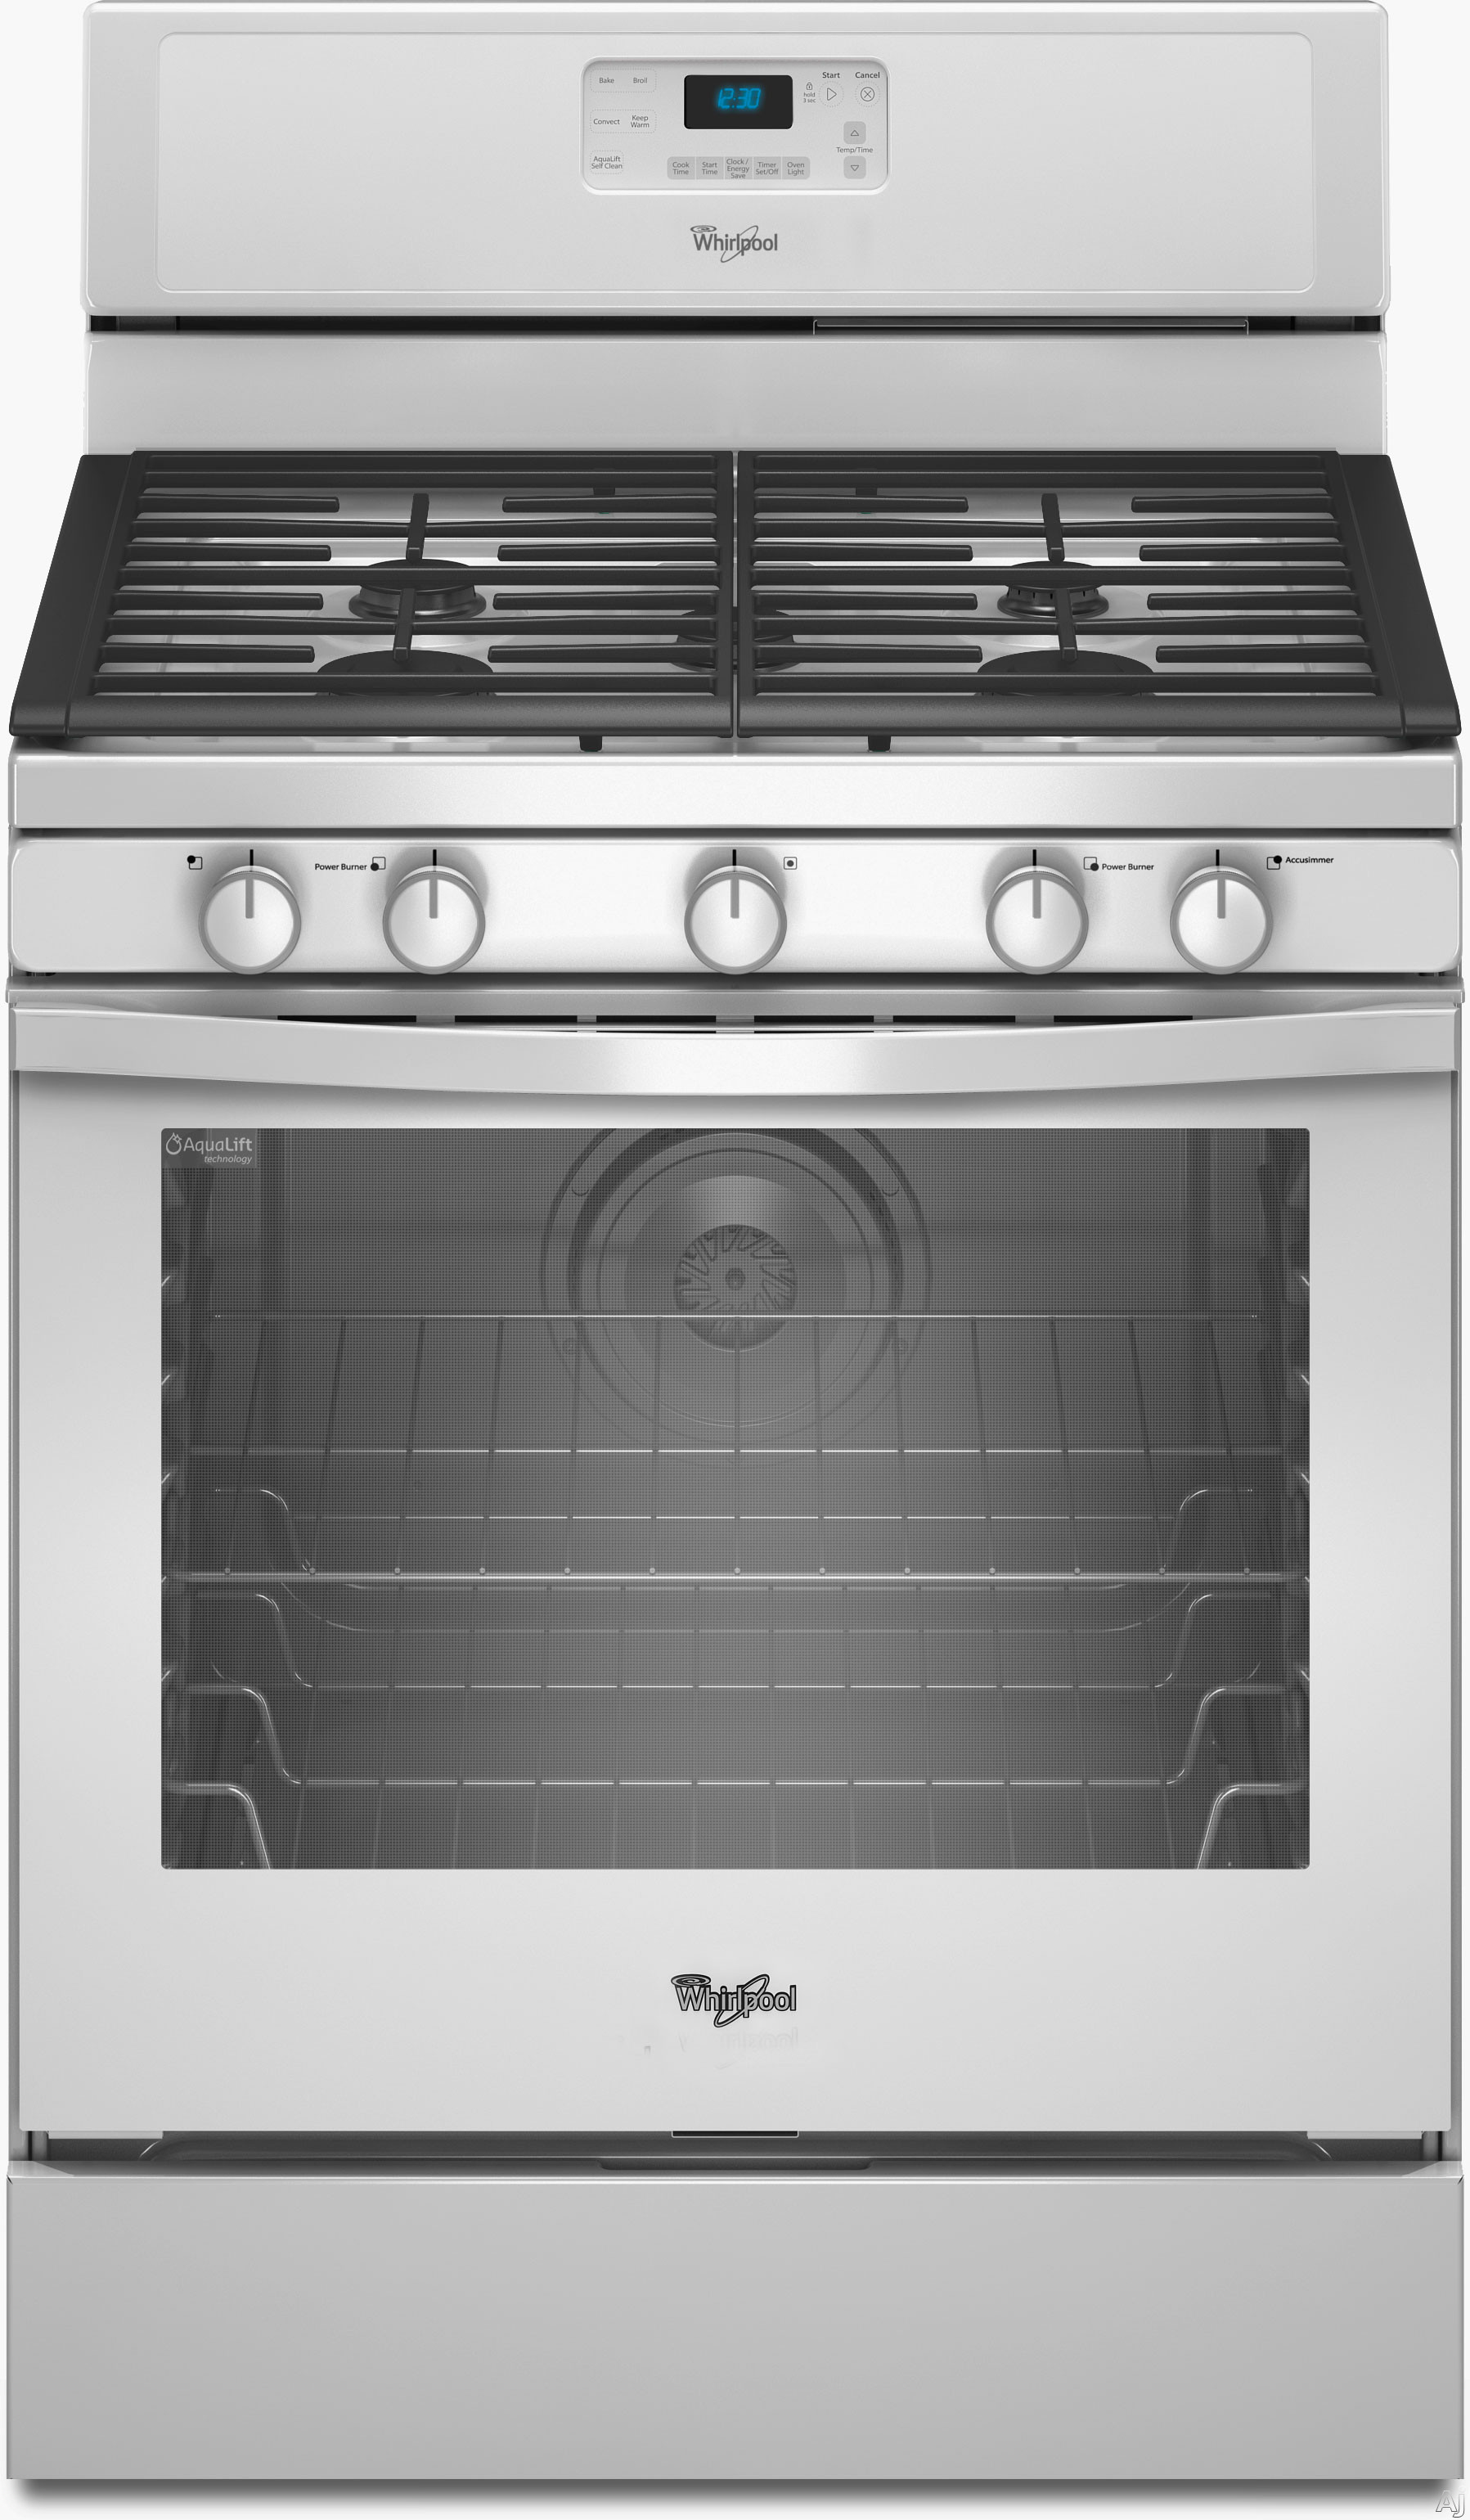 whirlpool wfg540h0aw 30 inch freestanding gas range with 4 sealed burners 5 8 cu ft aqualift. Black Bedroom Furniture Sets. Home Design Ideas